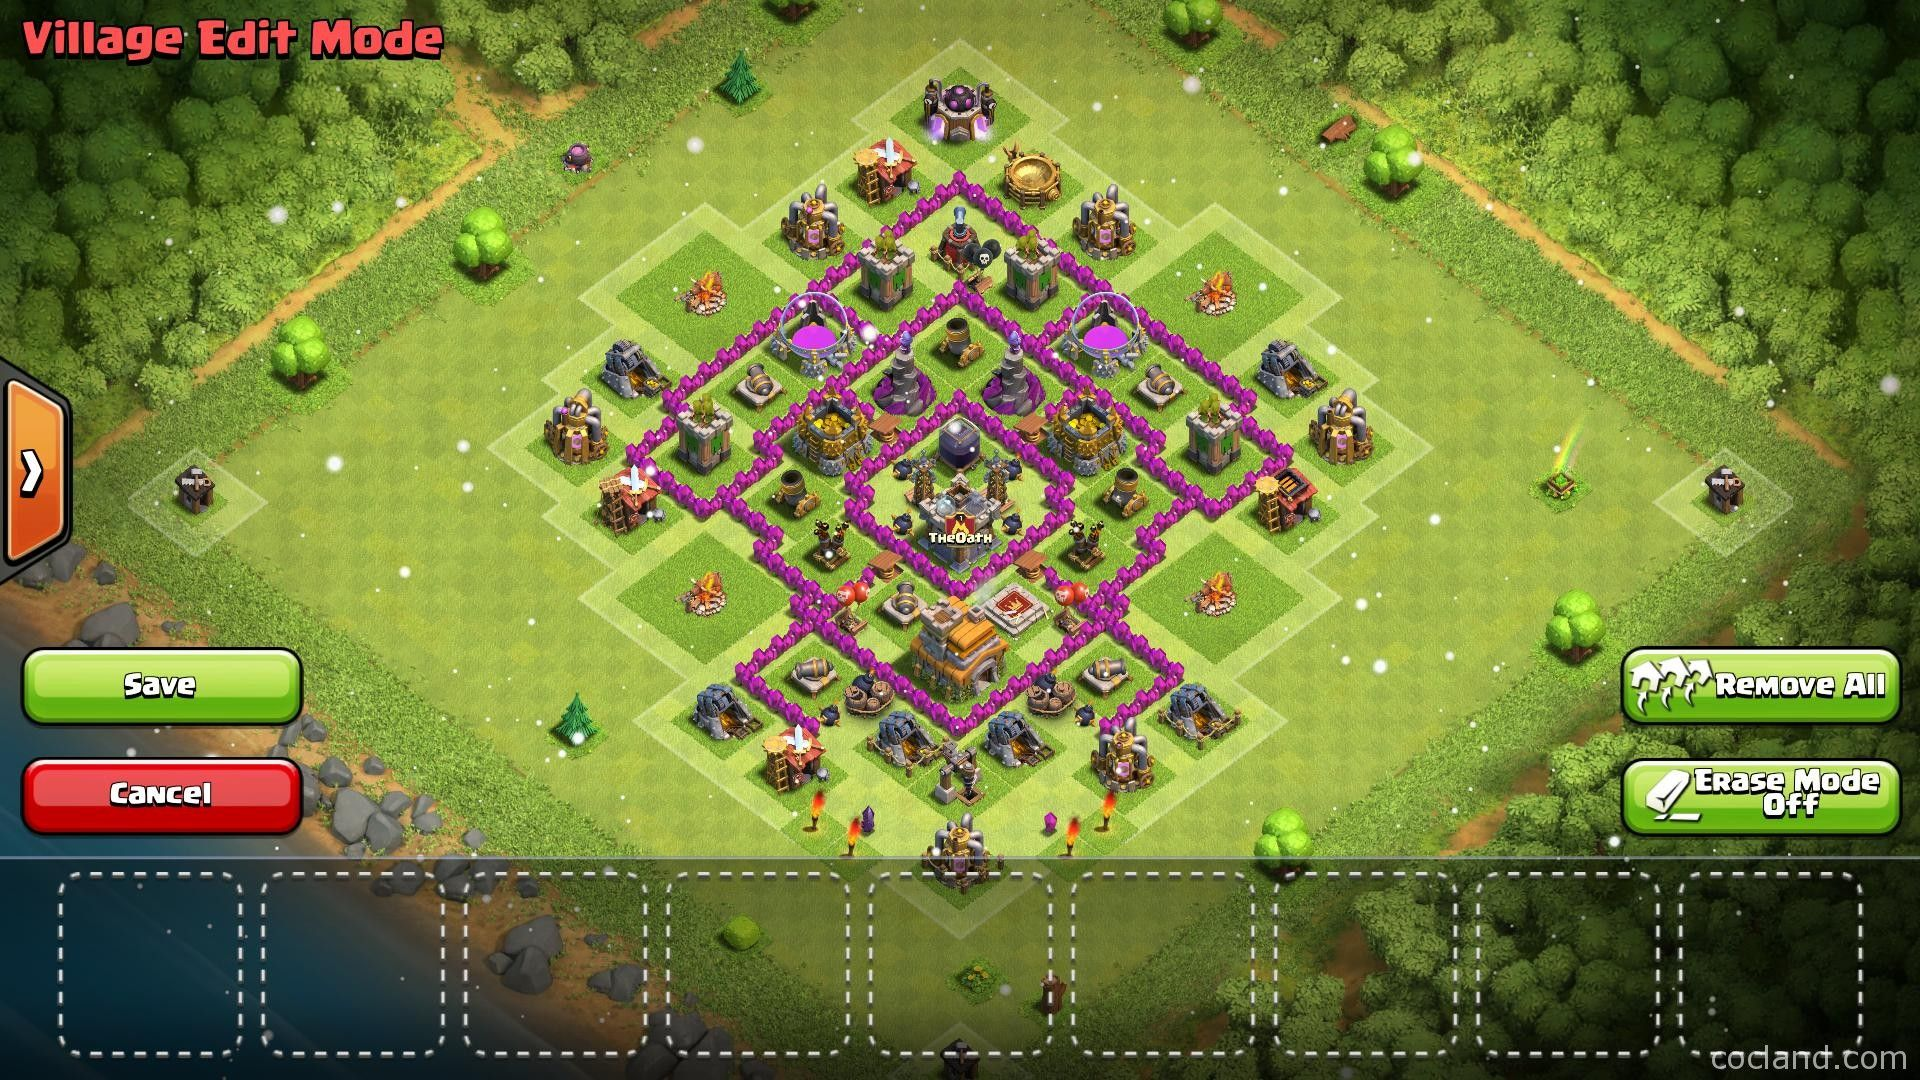 Pin By Clash Of Clans Guides On Clash Of Clans Tips Pinterest